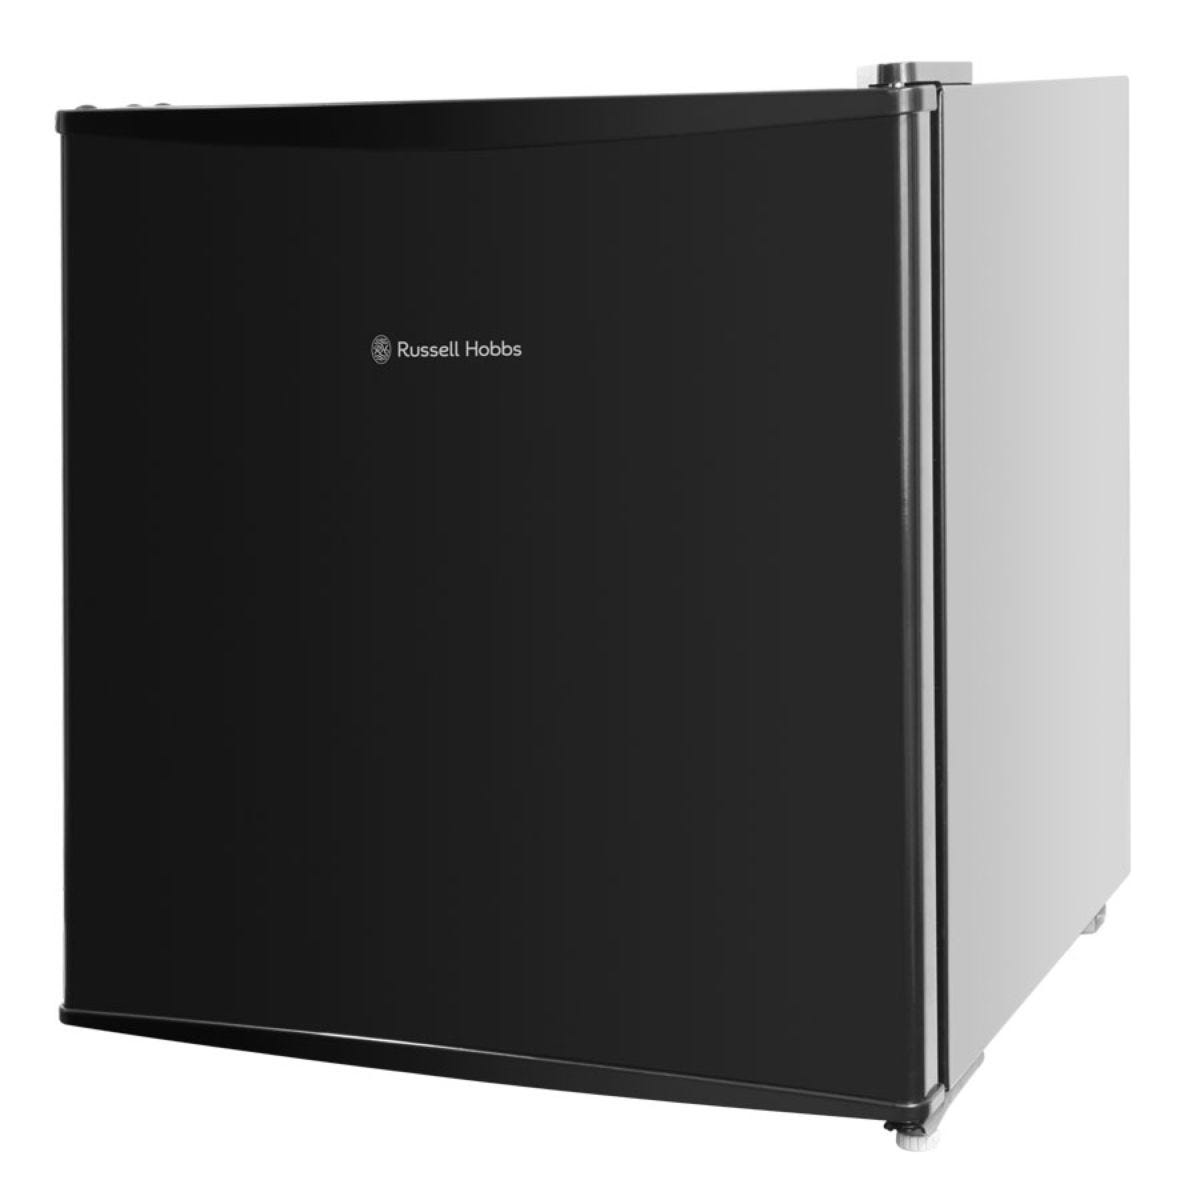 Russell Hobbs RHTTFZ1 32L Tabletop Freezer - Black